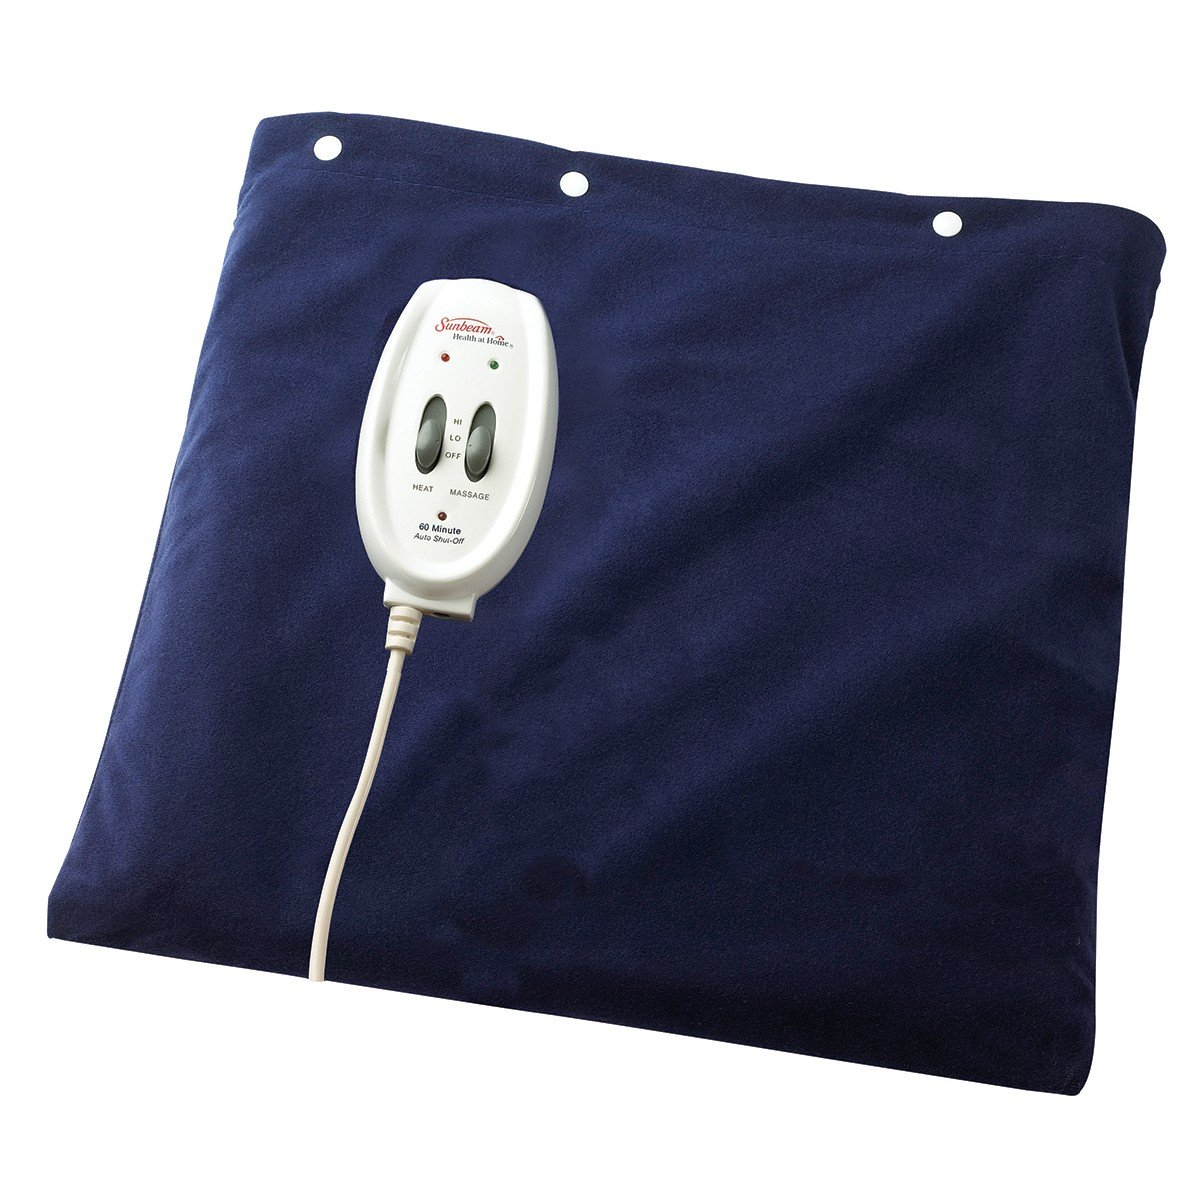 Amazoncom Sunbeam 730 811 Heating Pad plus Massage Health